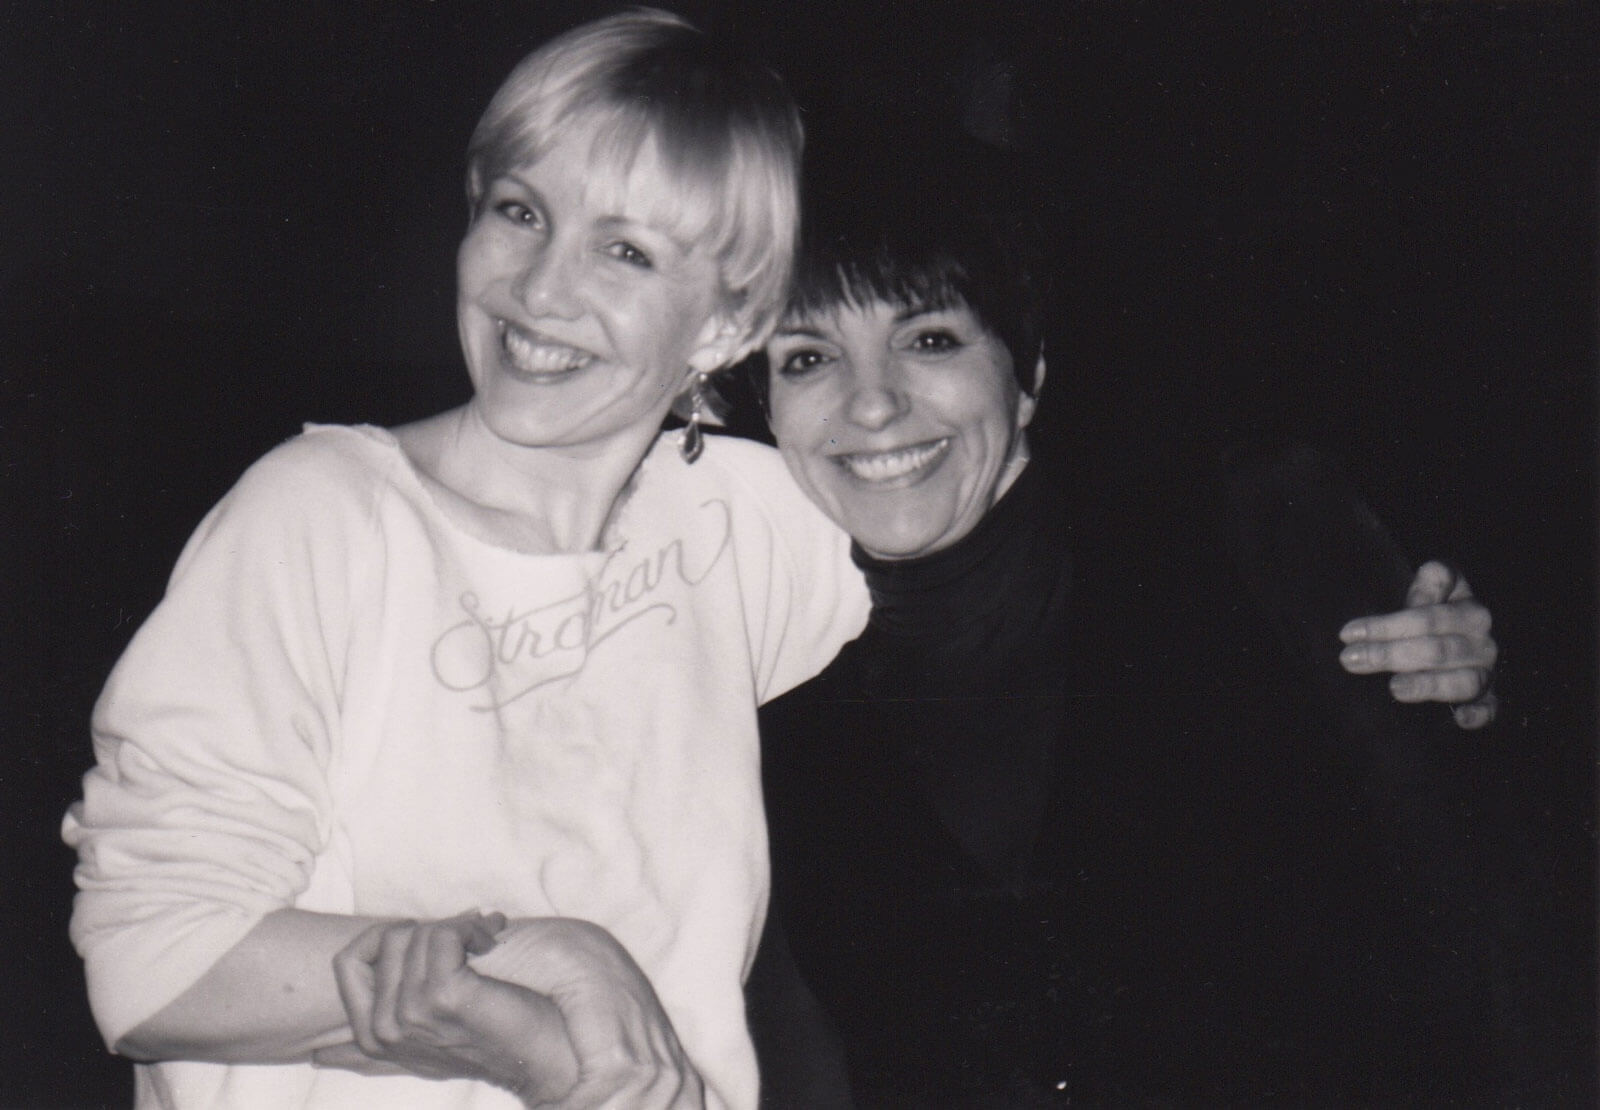 """Susan Stroman (in white """"Stroman"""" sweat shirt) and Liza Minnelli (in a black turtleneck) working together on her show at Radio City Music Hall."""